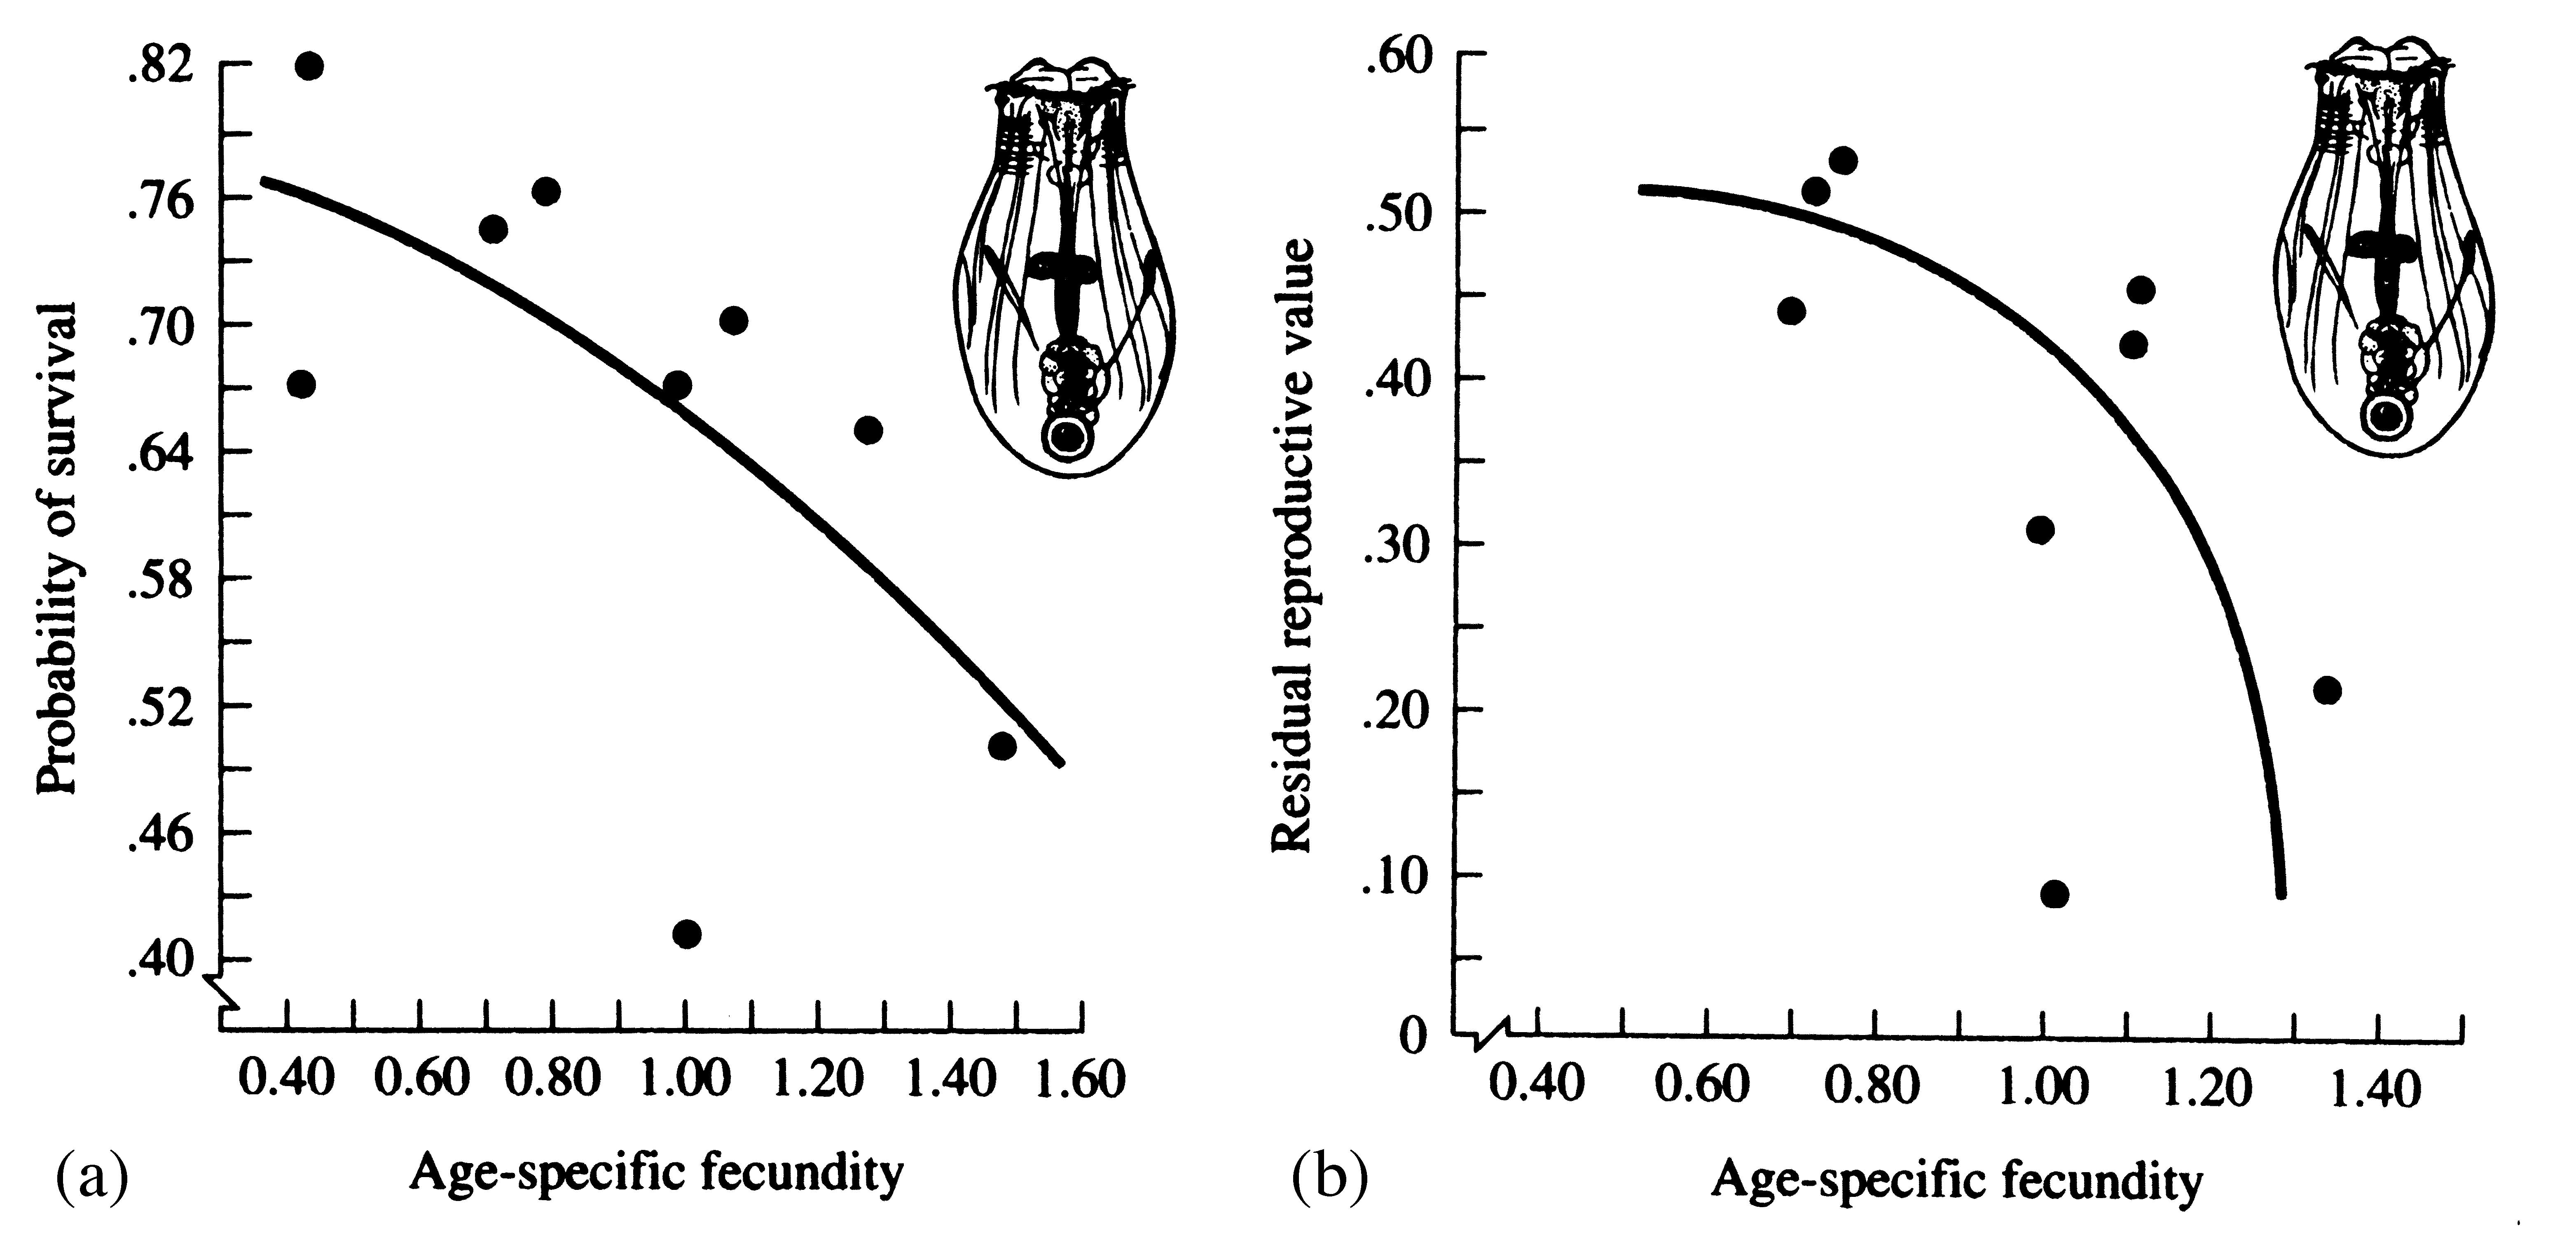 Probability Of Survival And Expectation Of Future Offspring Both Decrease  With Increased Age Specific Fecundity In The Rotifer Asplanchna.